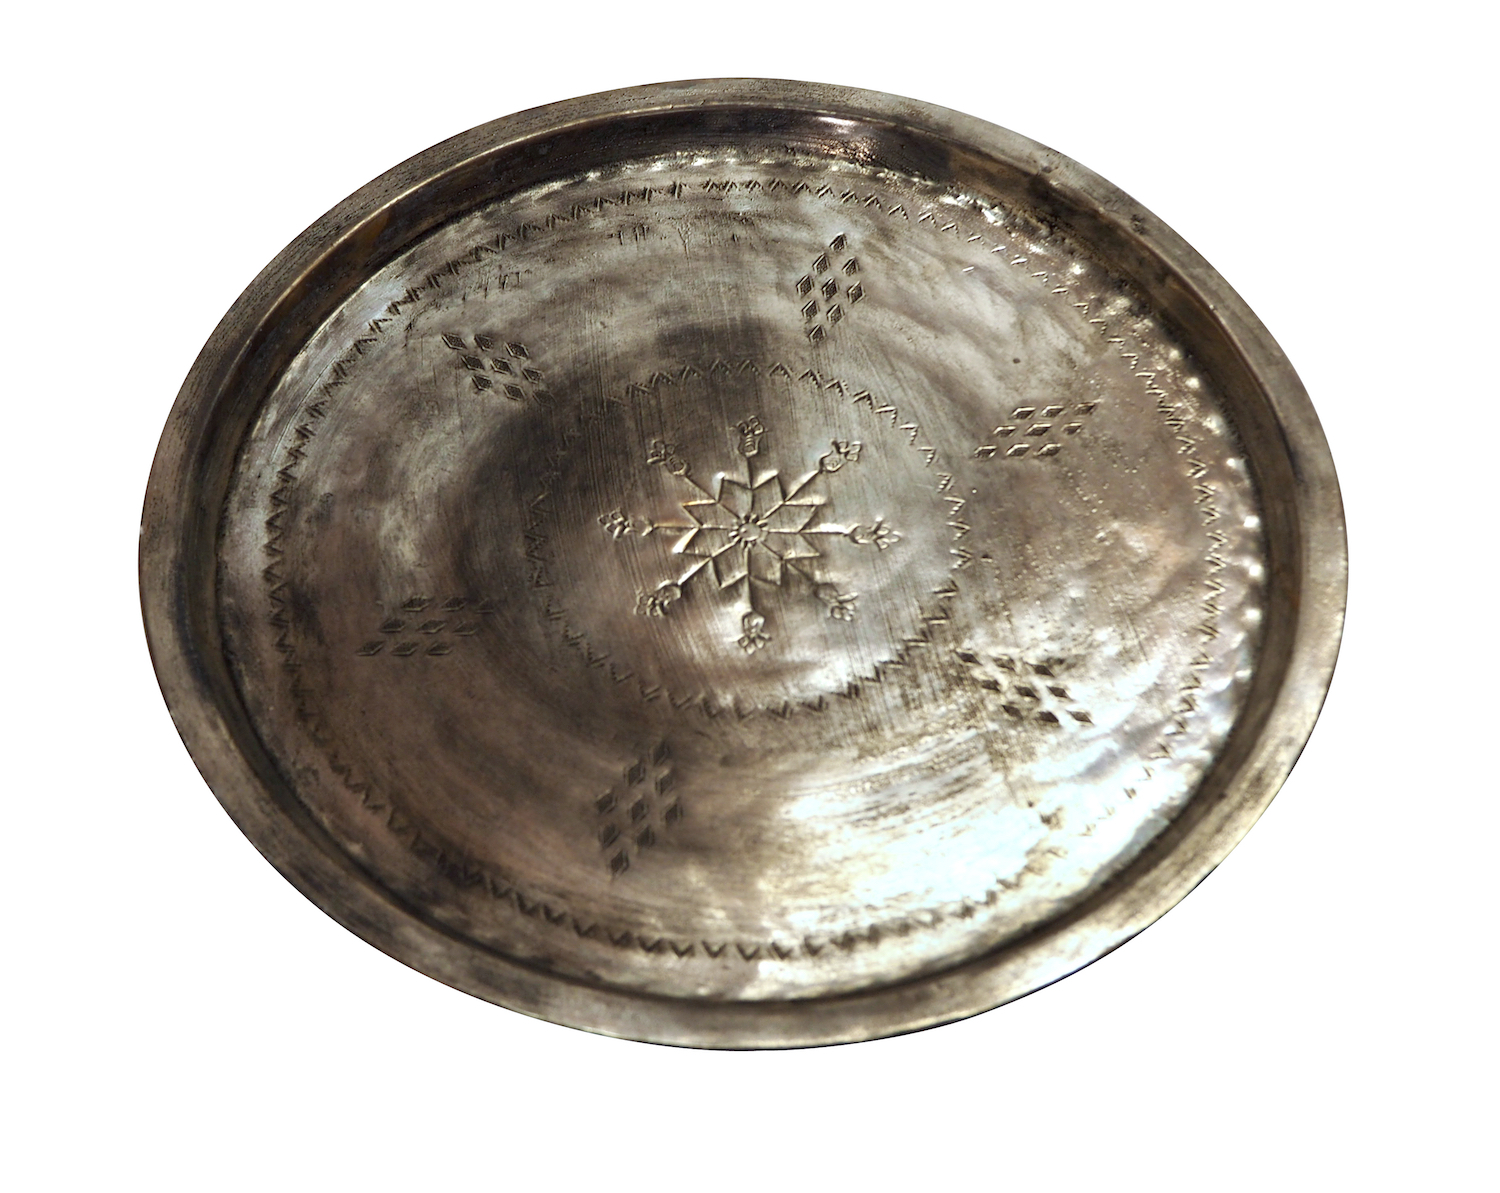 Antique Copper Serving Tray XL = 40 - 45 cm diameter